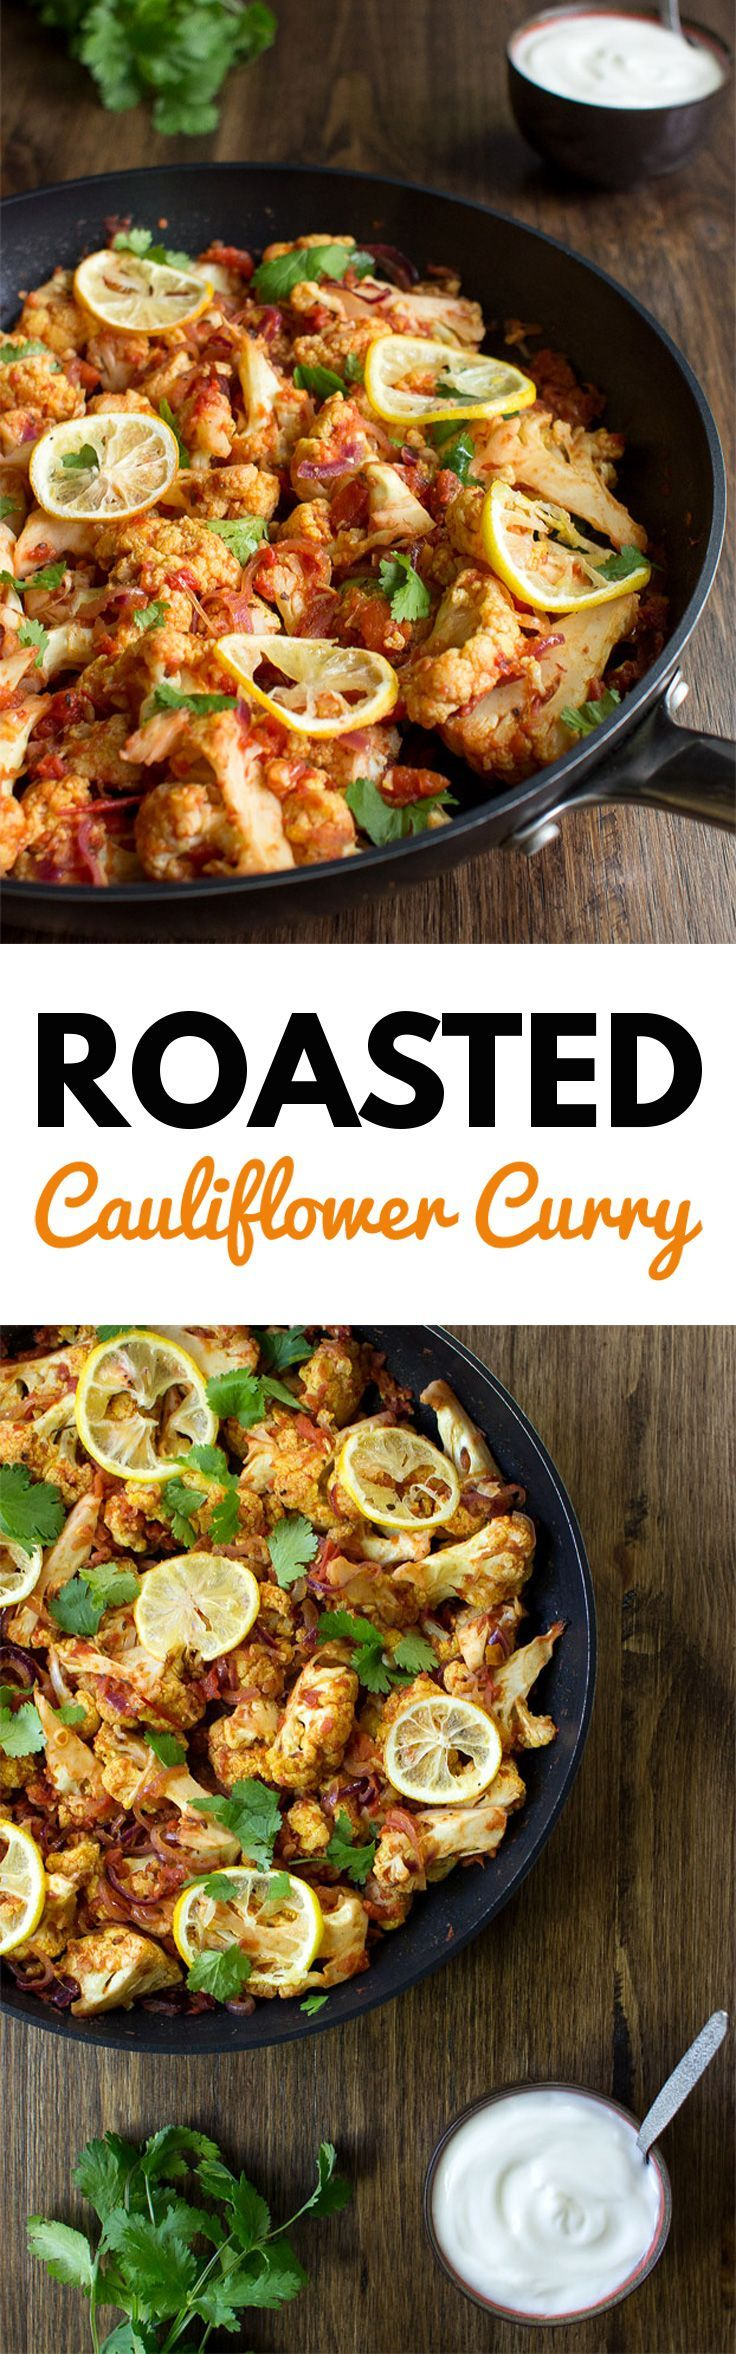 Roasted Cauliflower Curry | Sweet, Spicy and Vegan - Pakistani Style. A delicious fusion of Pakistani spices | hurrythefoodup.com